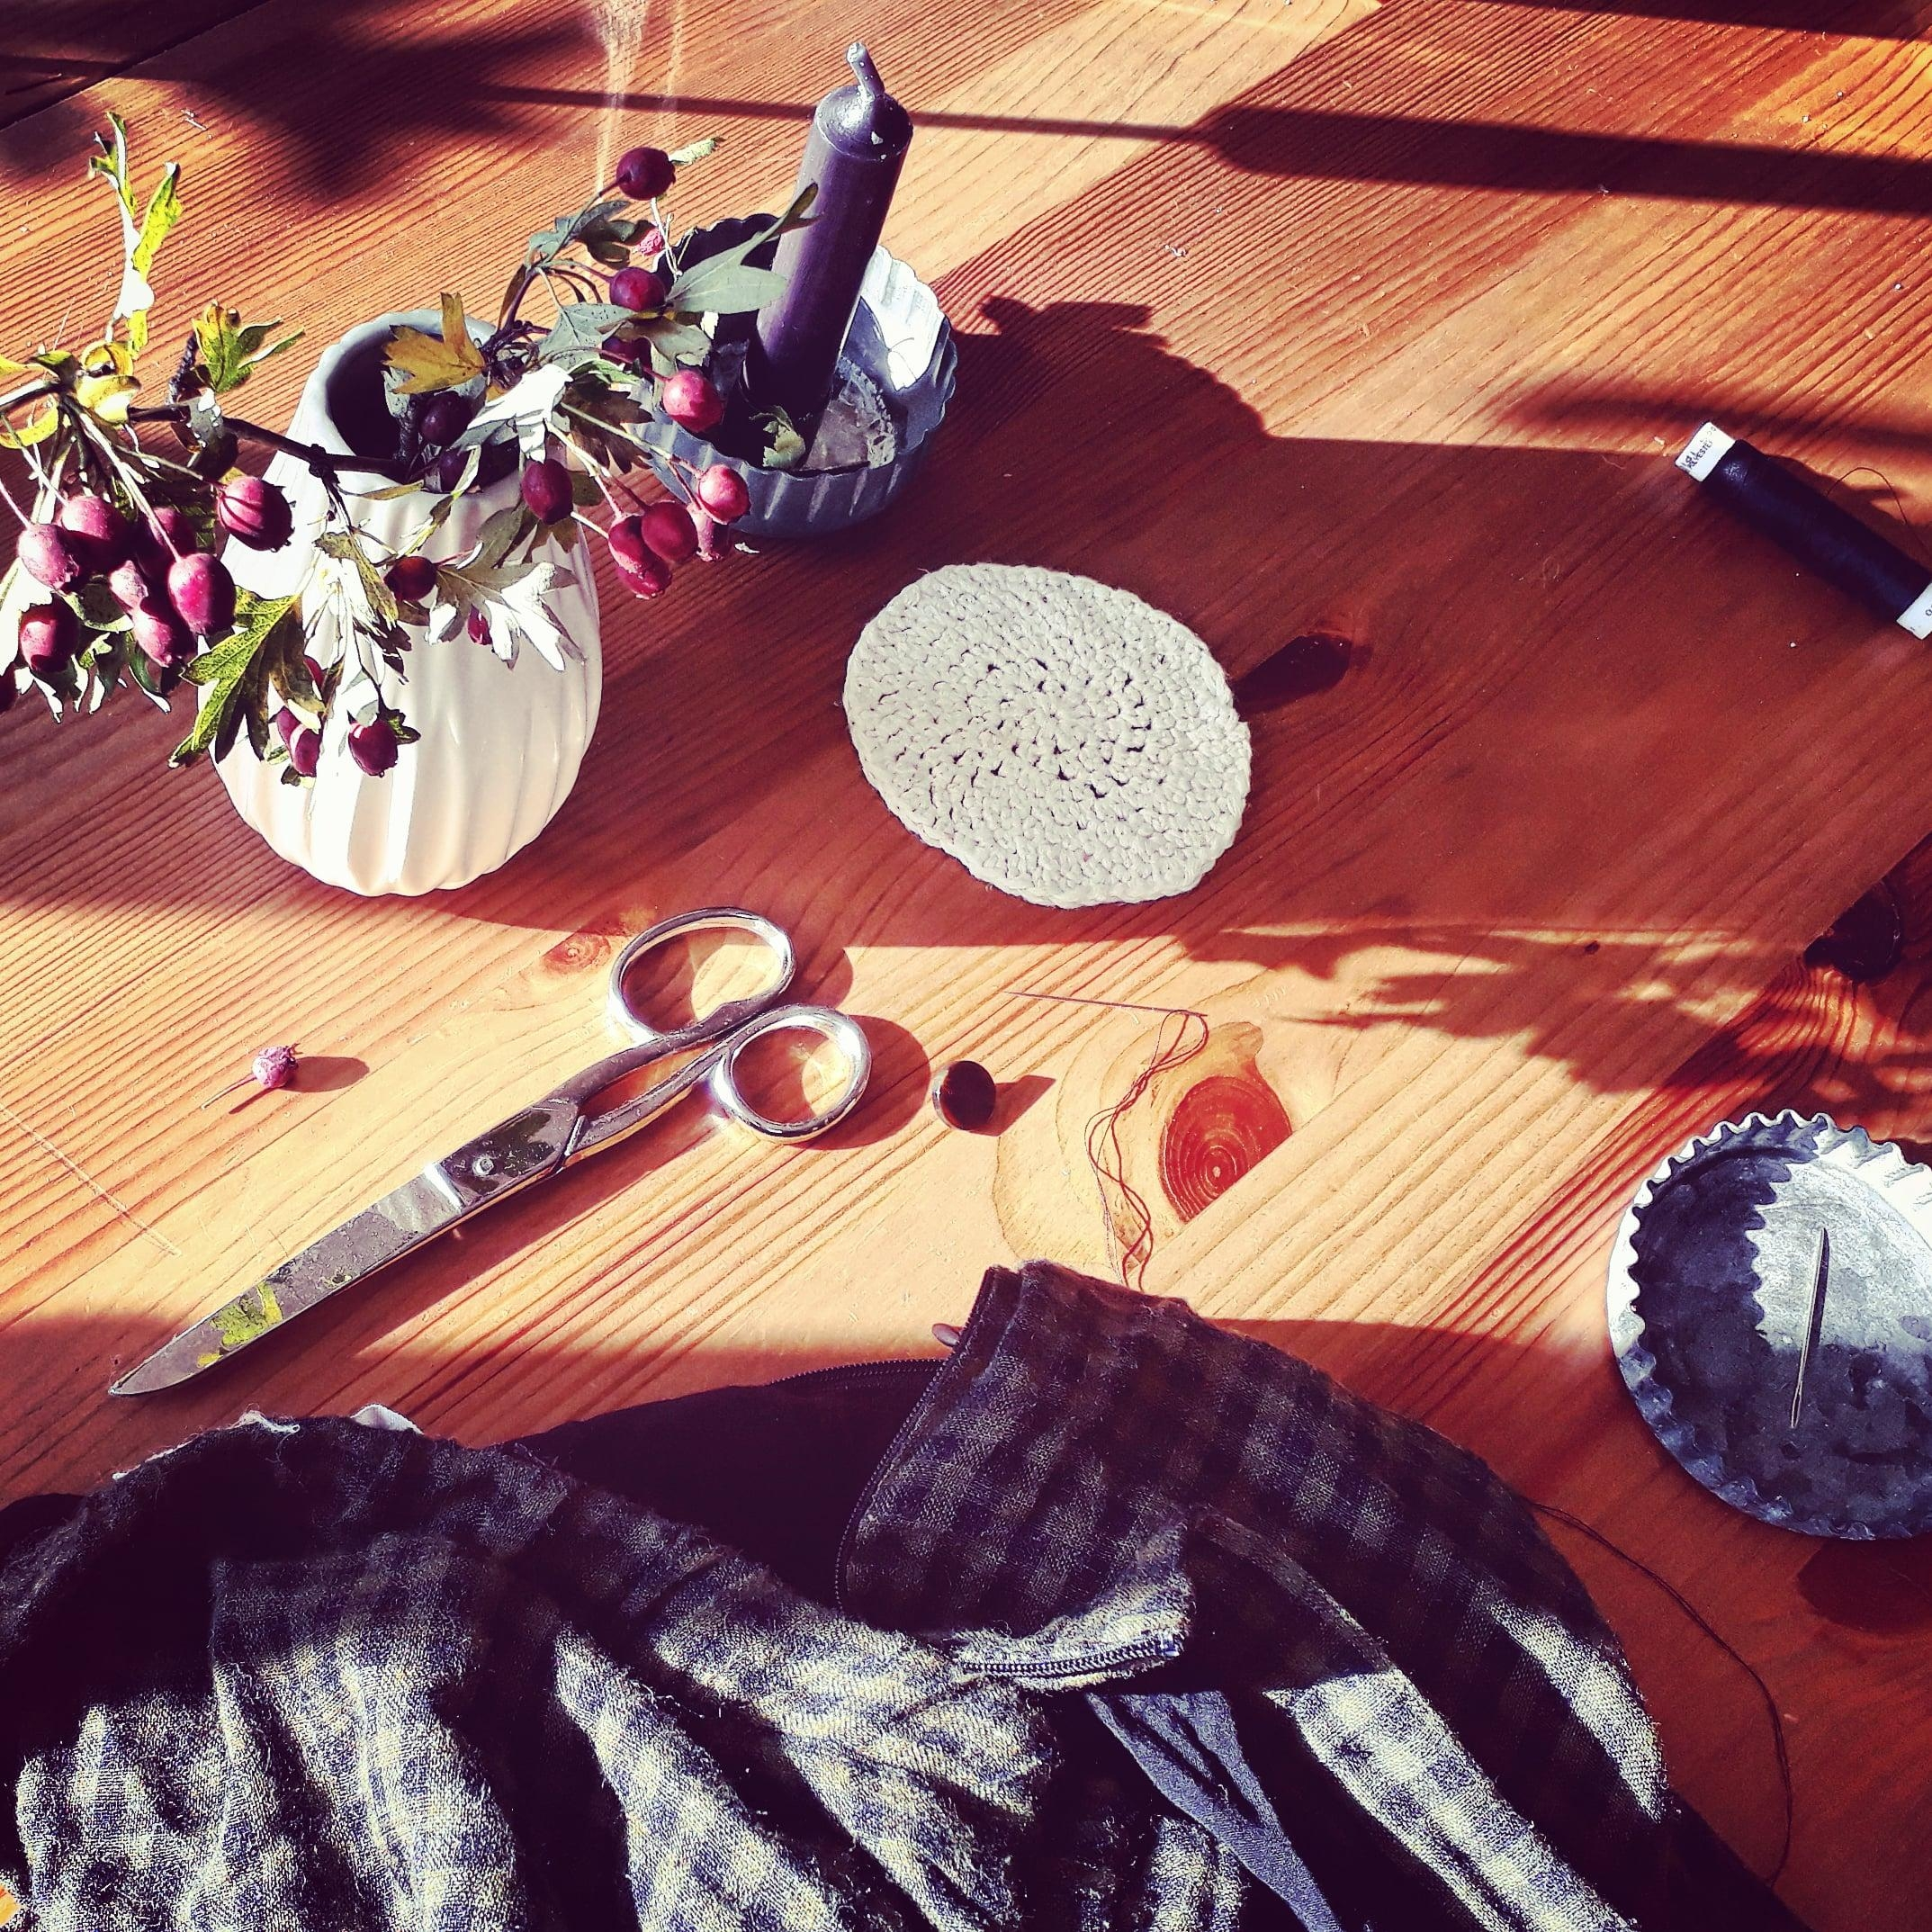 Saturday morning in fall 🍂🍁